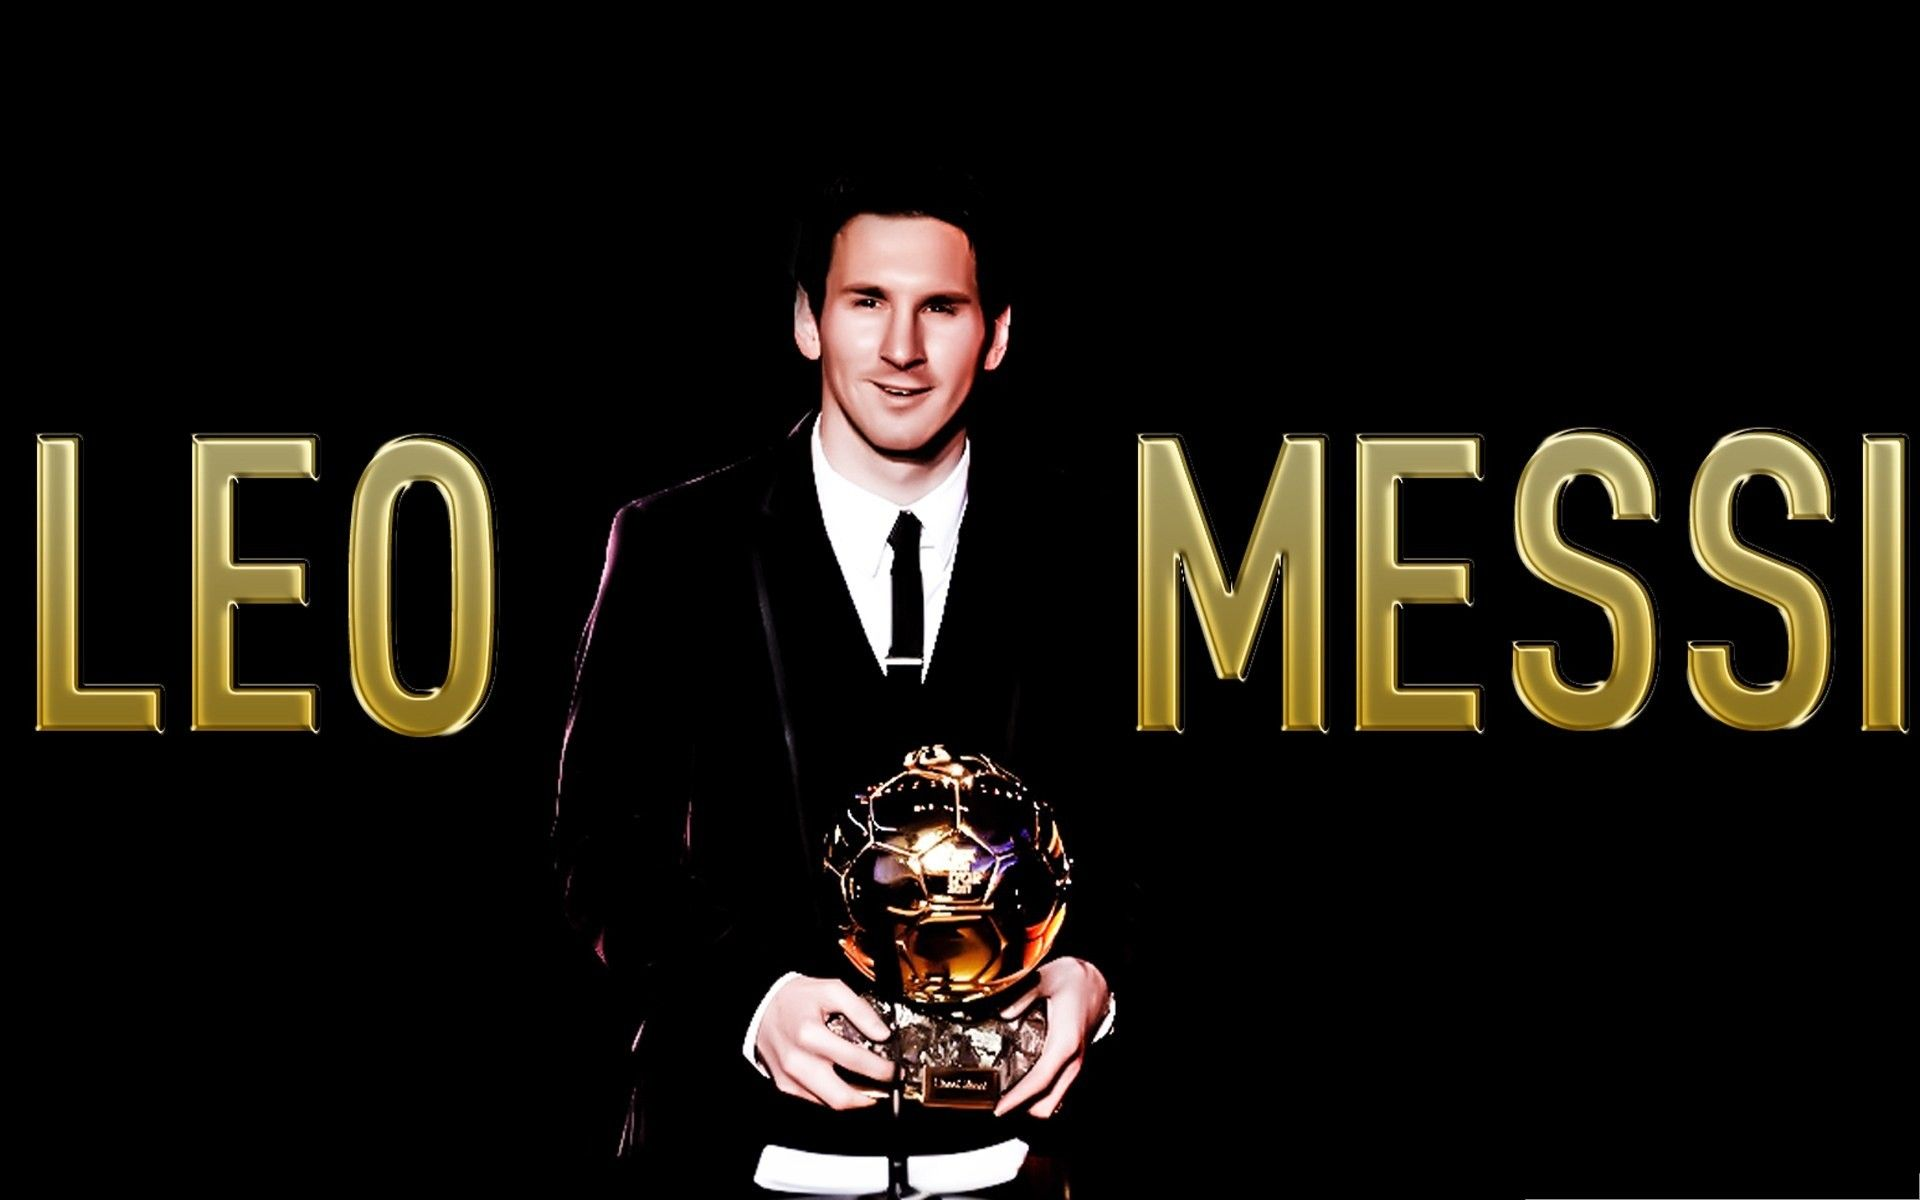 Lionel Messi Wallpaper HD Download Free Latest